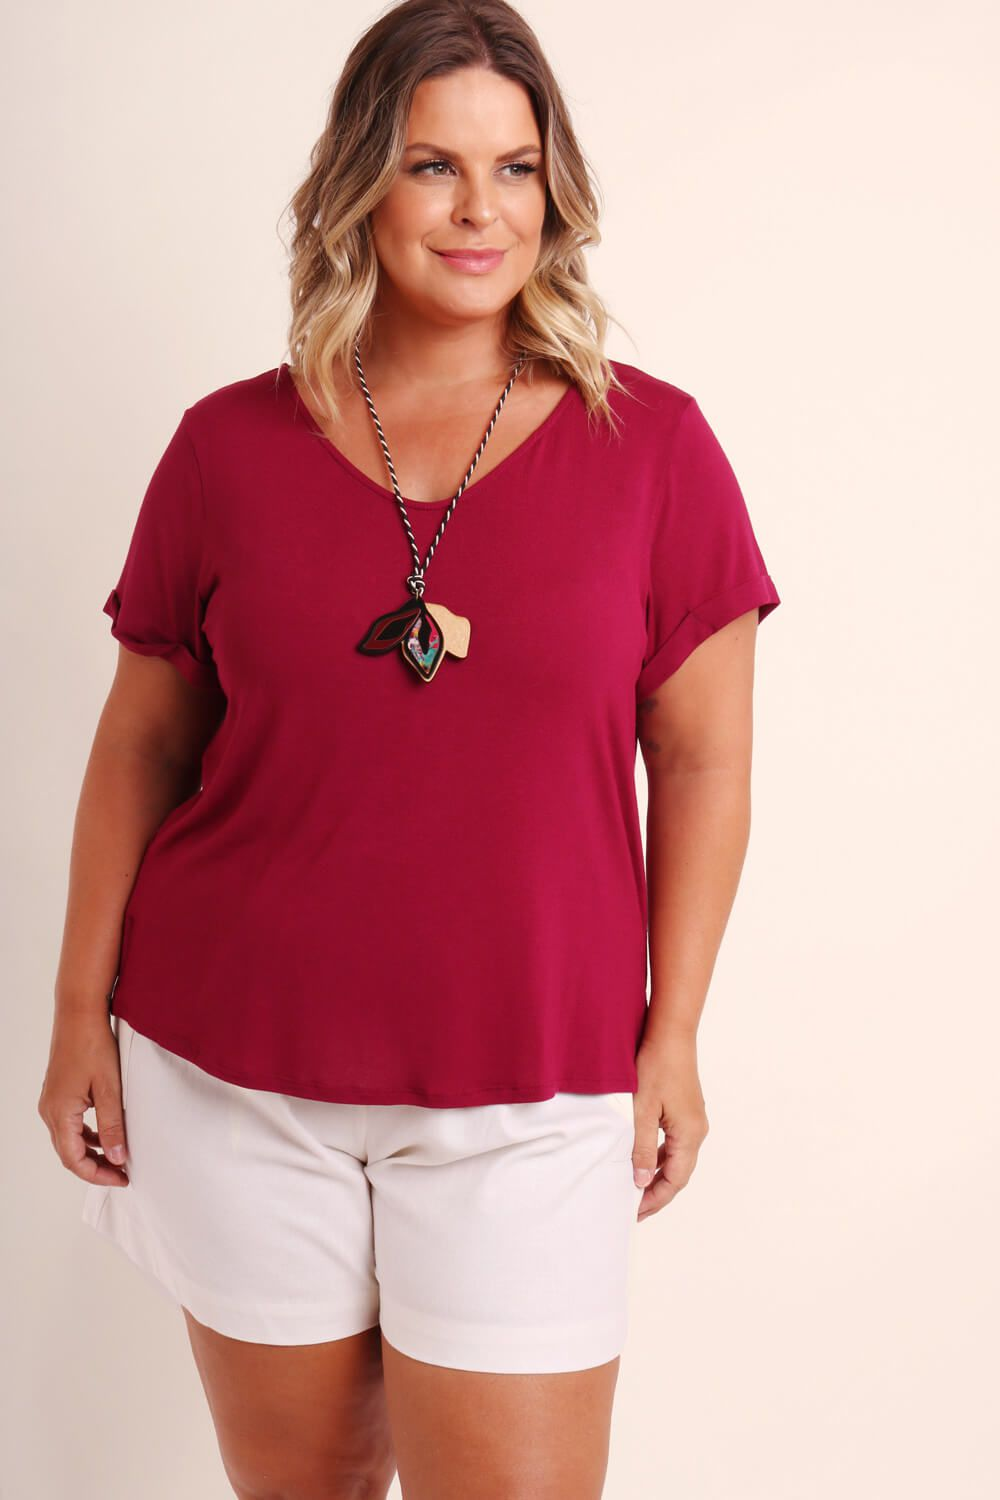 BLUSA KIT PLUS SIZE BORDÔ